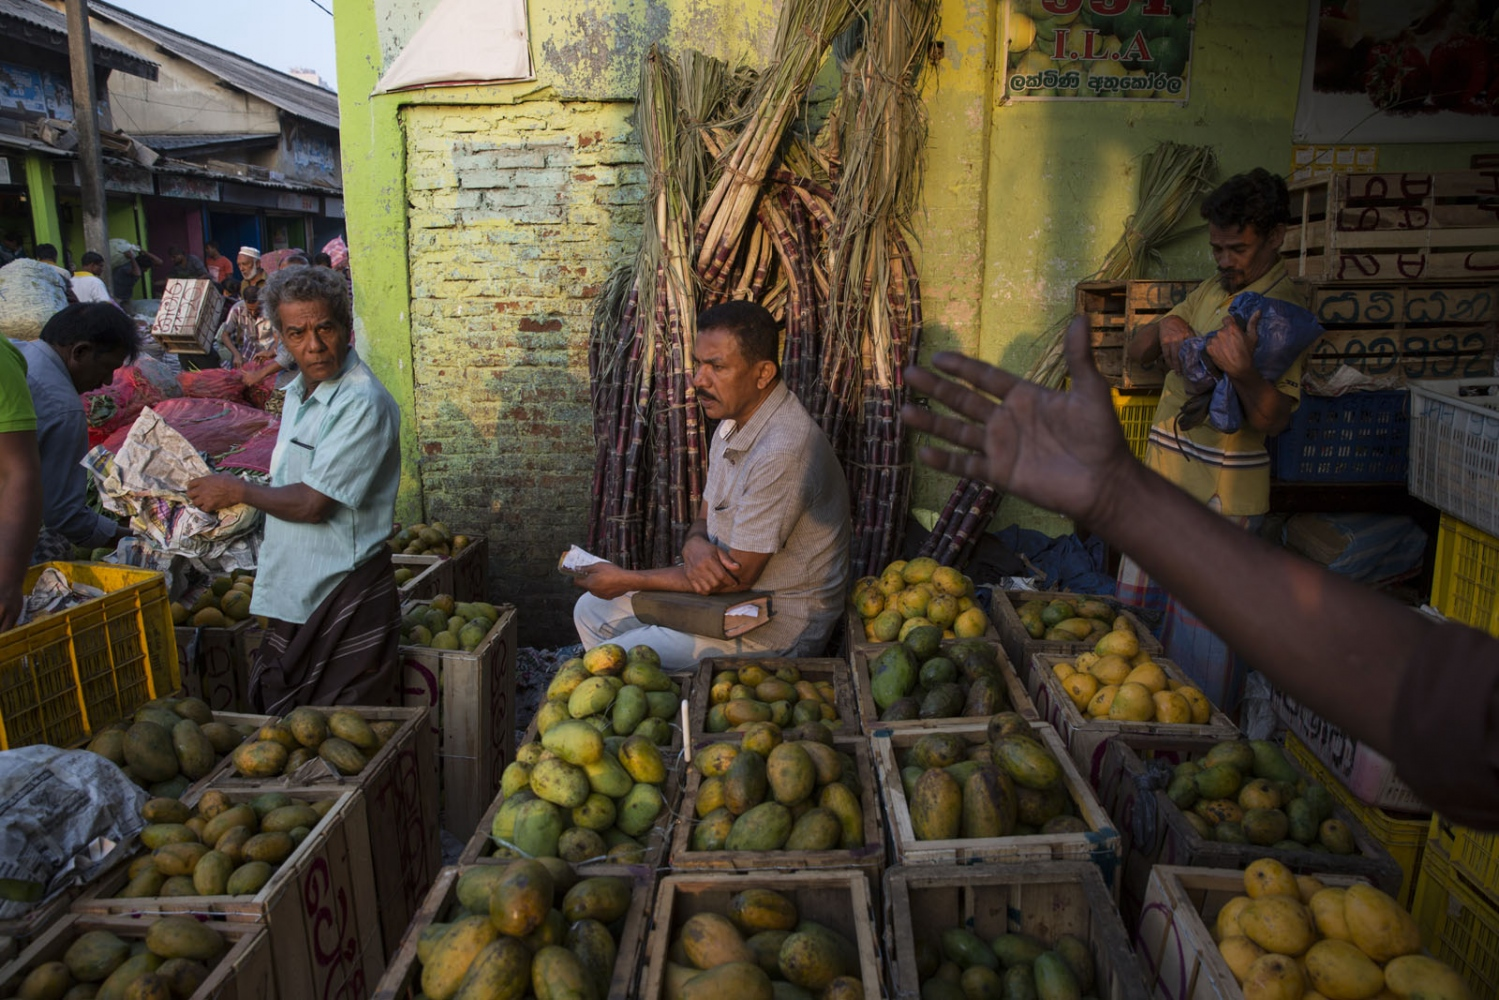 Early morning activities at Manning wholesale fruit and vegetable market in Central Colombo. Manning market has been at this location for over one hundred years with most stalls passed down hereditary lines. Colombo, Sri Lanka.